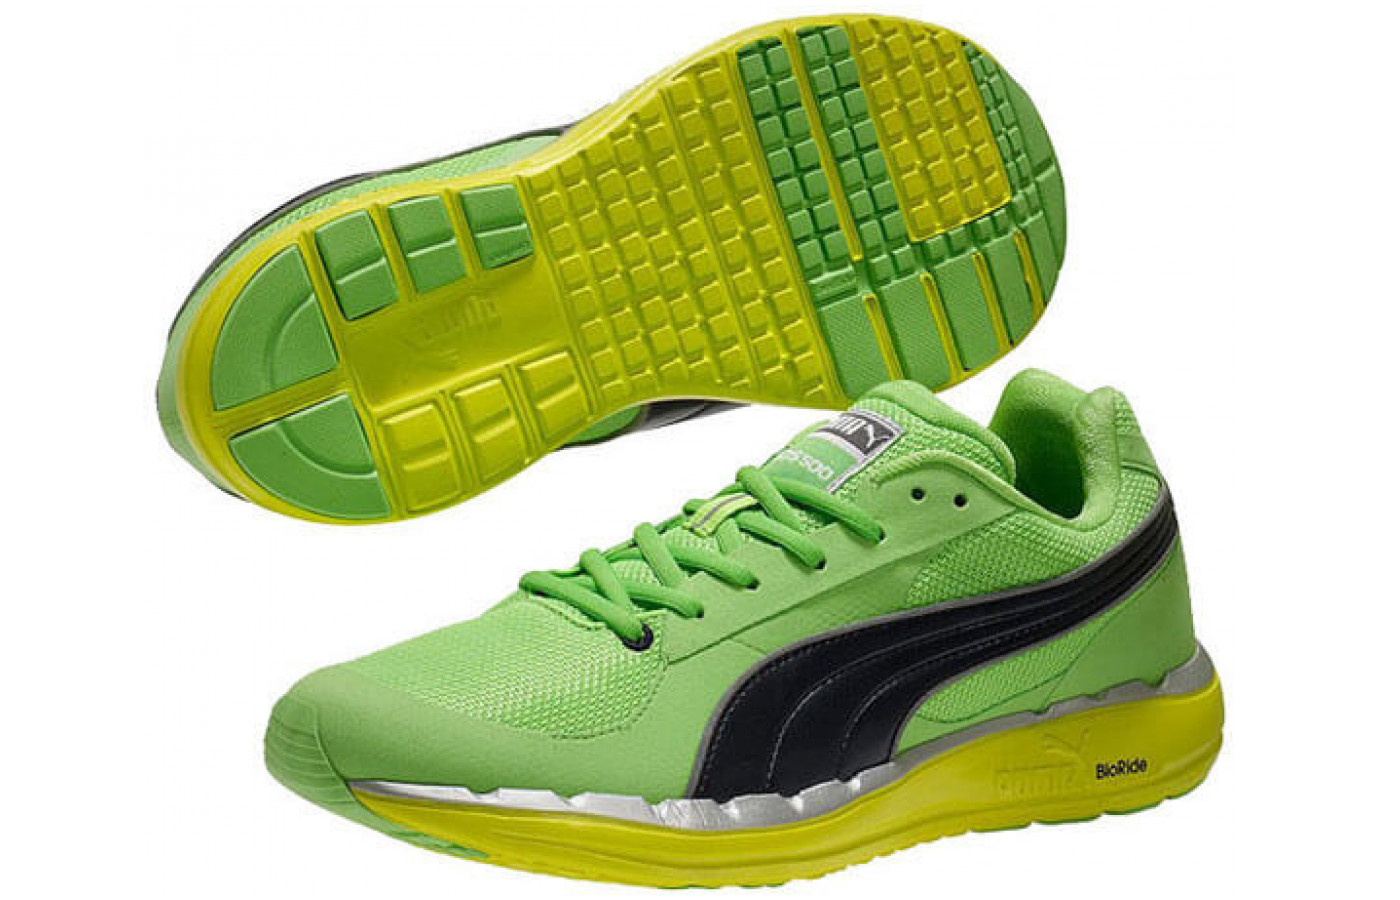 The outsole provides added traction and grip for runners.